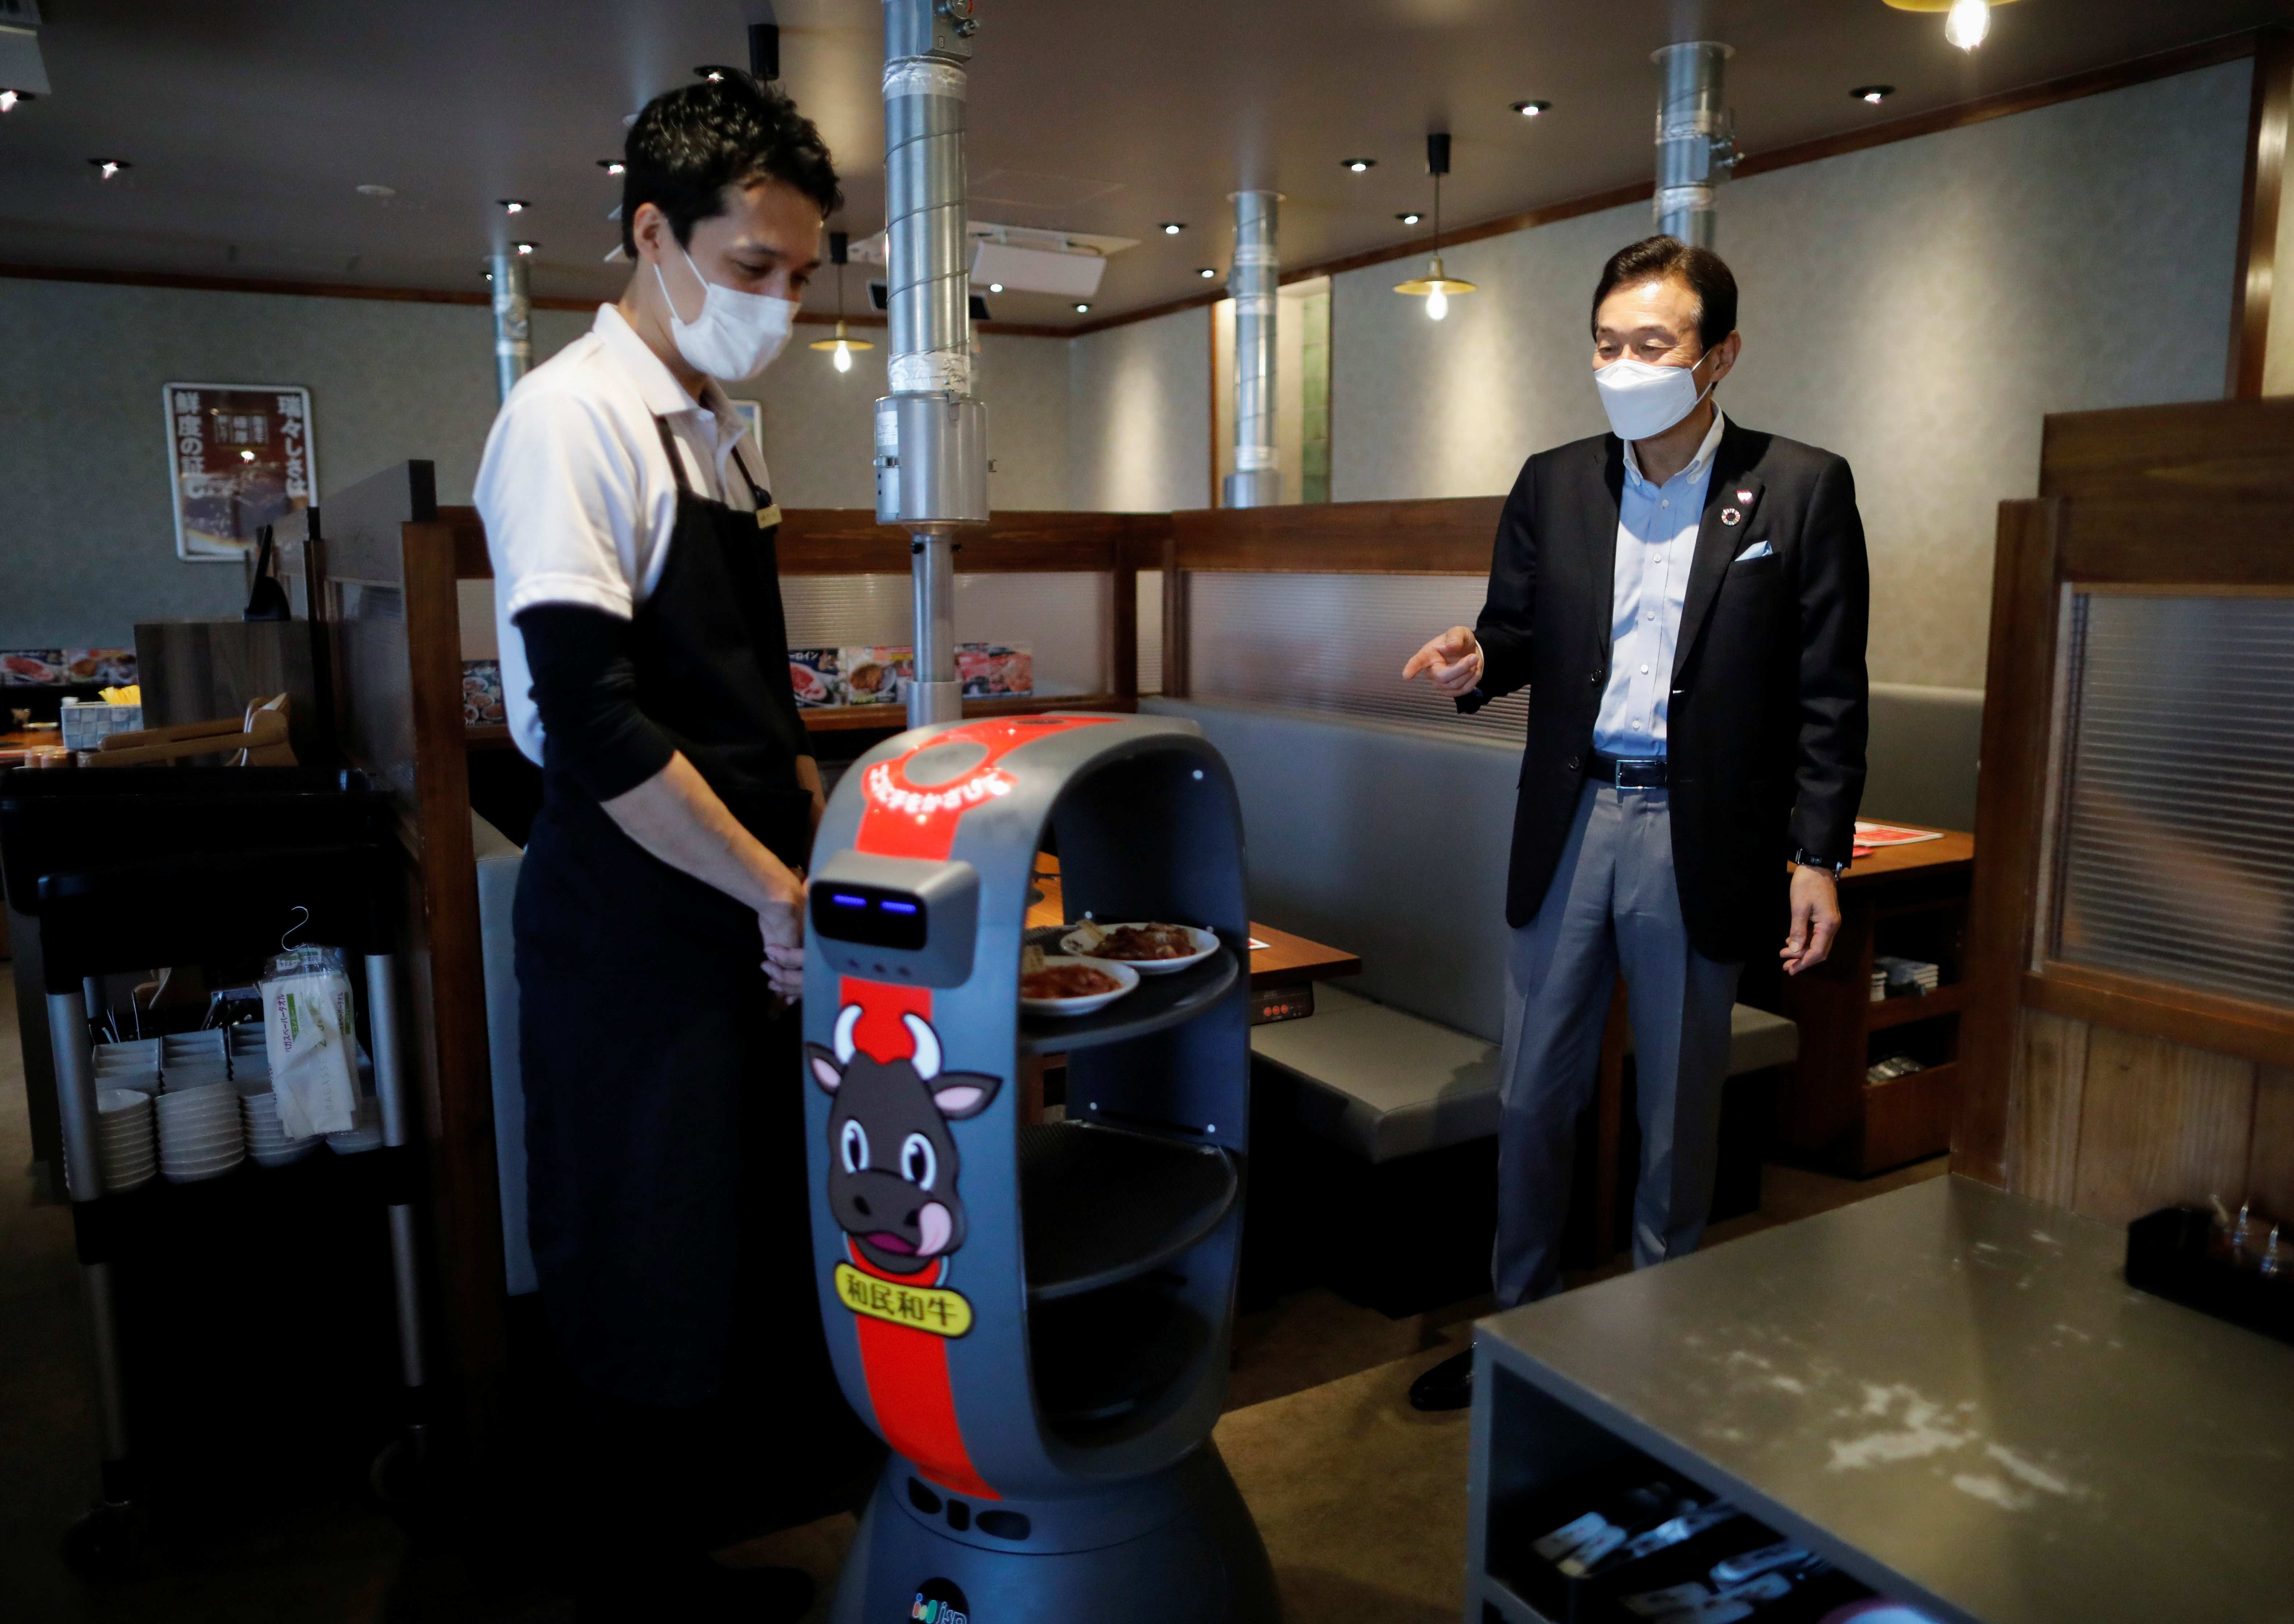 Miki Watanabe, Chairman and CEO of Watami Co. talks with a staff member next to a serving robot at their yakiniku barbecue restaurant named 'Yakiniku no Watami', in Tokyo, Japan September 15, 2021. Picture taken September 15, 2021.  REUTERS/Issei Kato